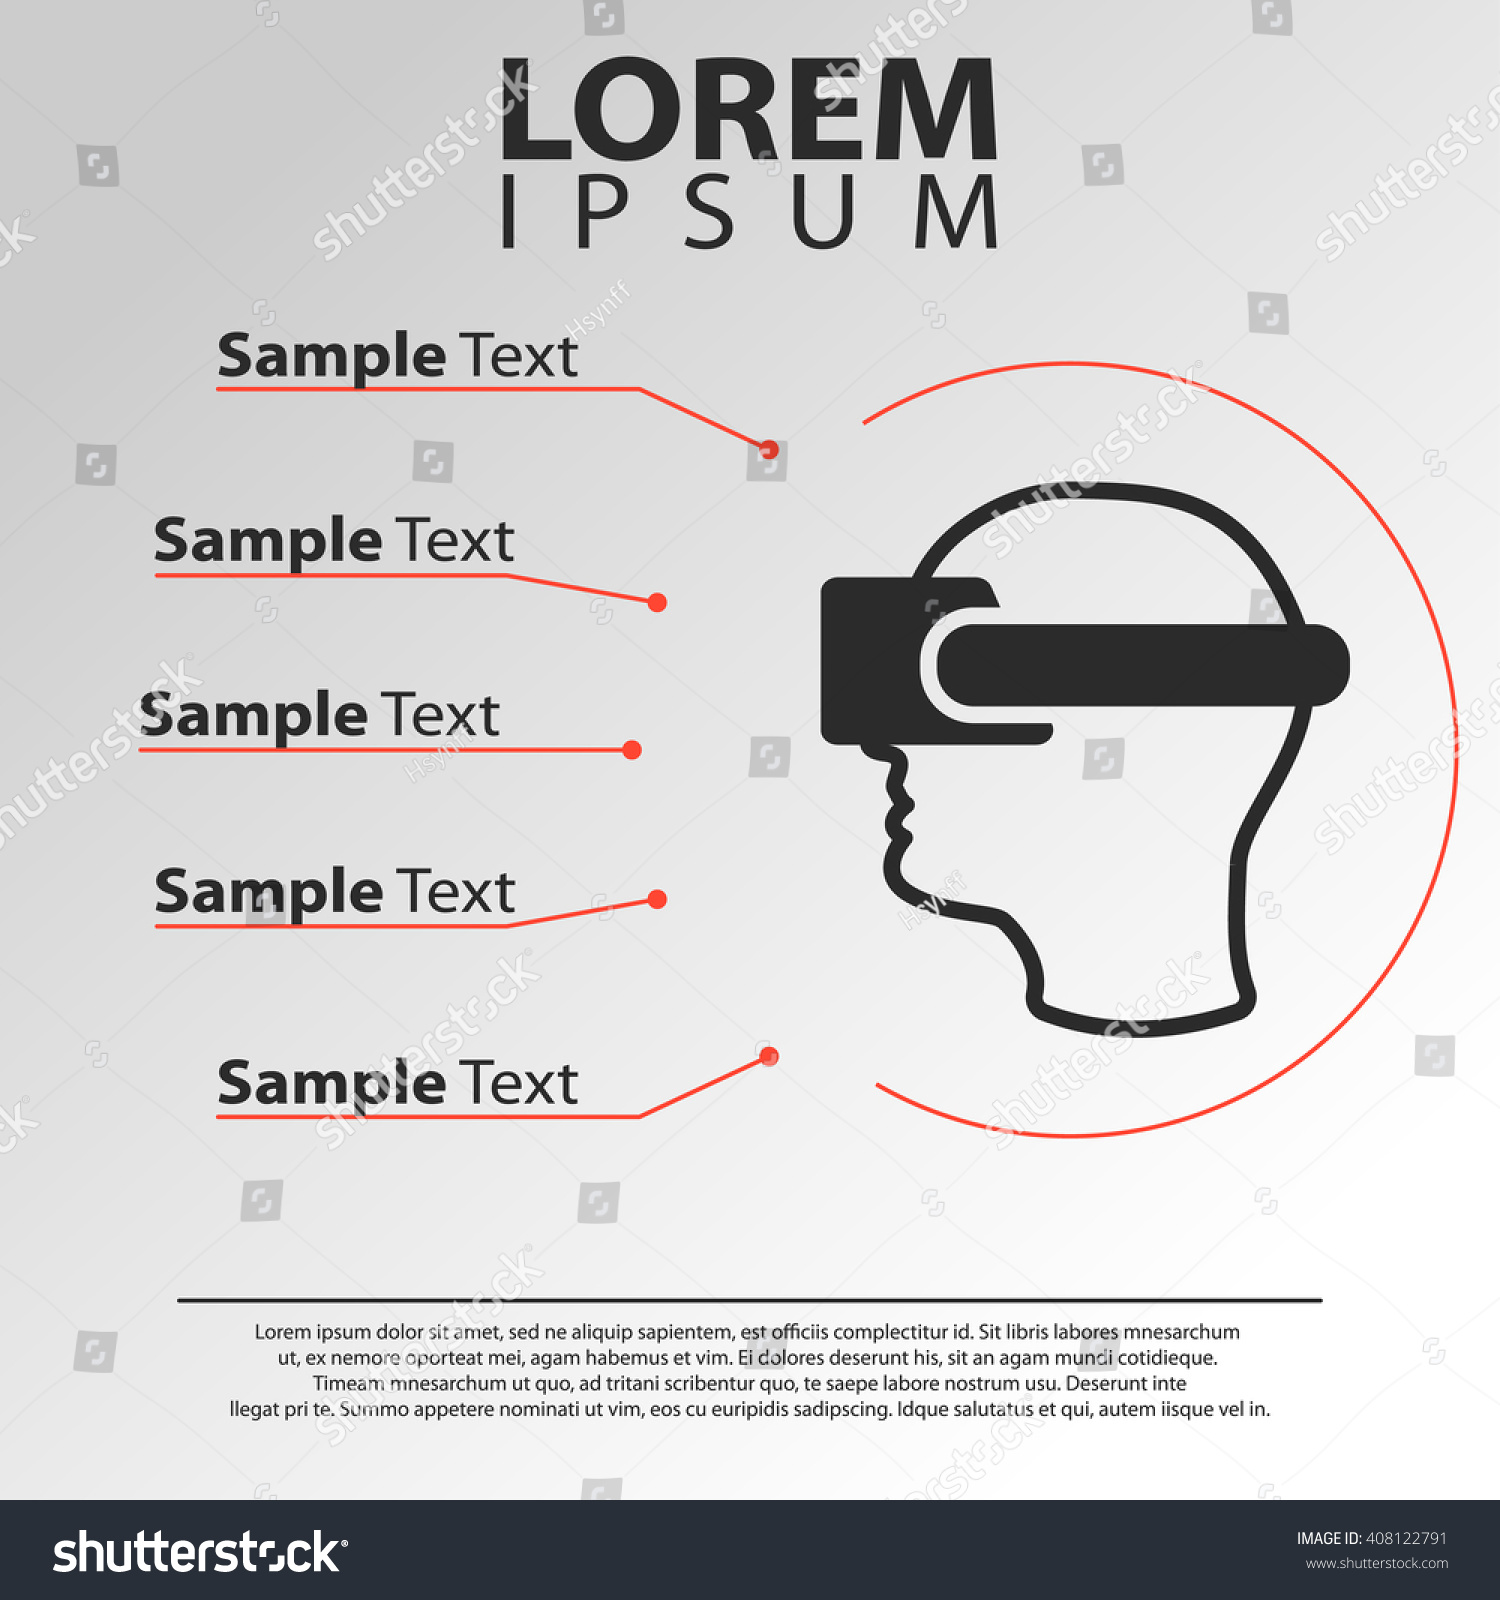 Excellent 1099 Template Excel Tall 1099 Template Word Square 2014 Monthly Calendar Templates 2015 Template Calendar Old 3d Animator Resume Templates Bright3d Character Modeler Resume Man Wearing Virtual Reality Glasses Icon Stock Vector 408122791 ..